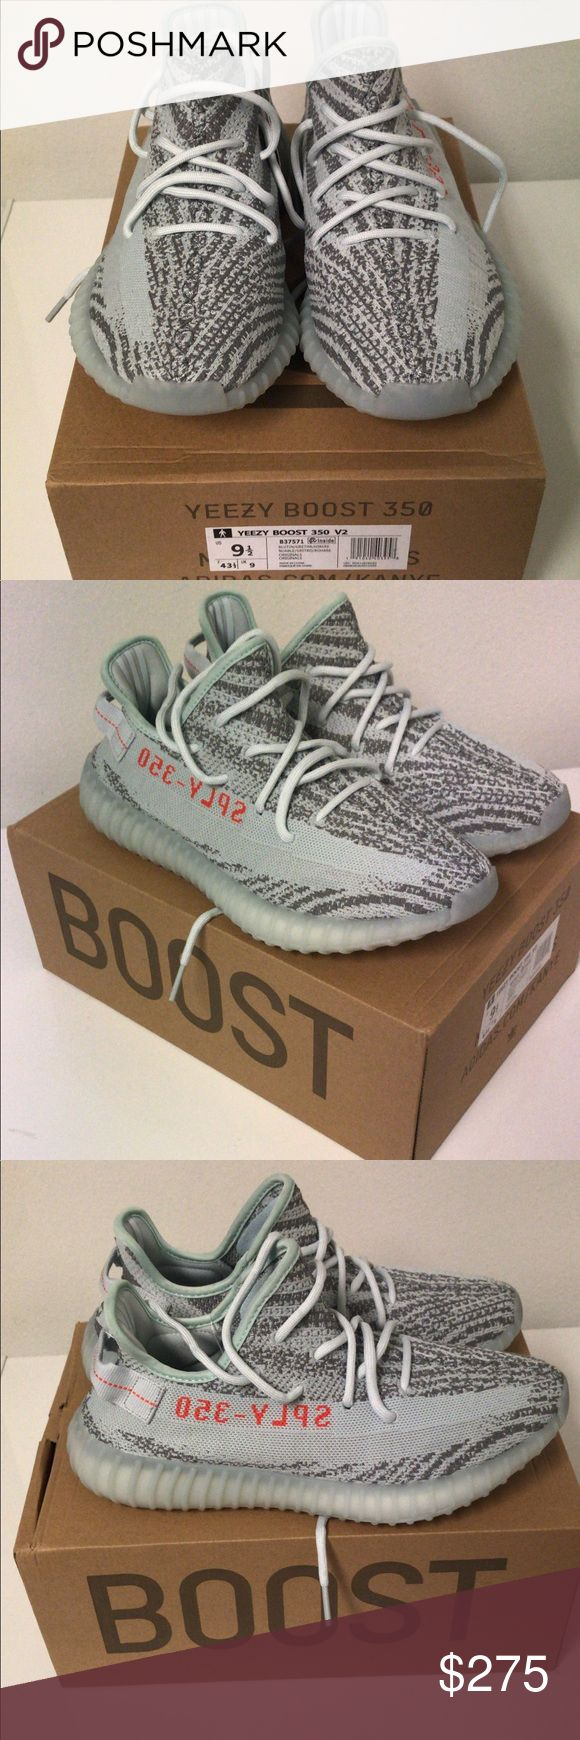 Brand new yeezy boost 350 v2 blue tint size 9.5 Adidas yeezy boost 350v2 blue tint size 9.5 adidas Shoes Sneakers